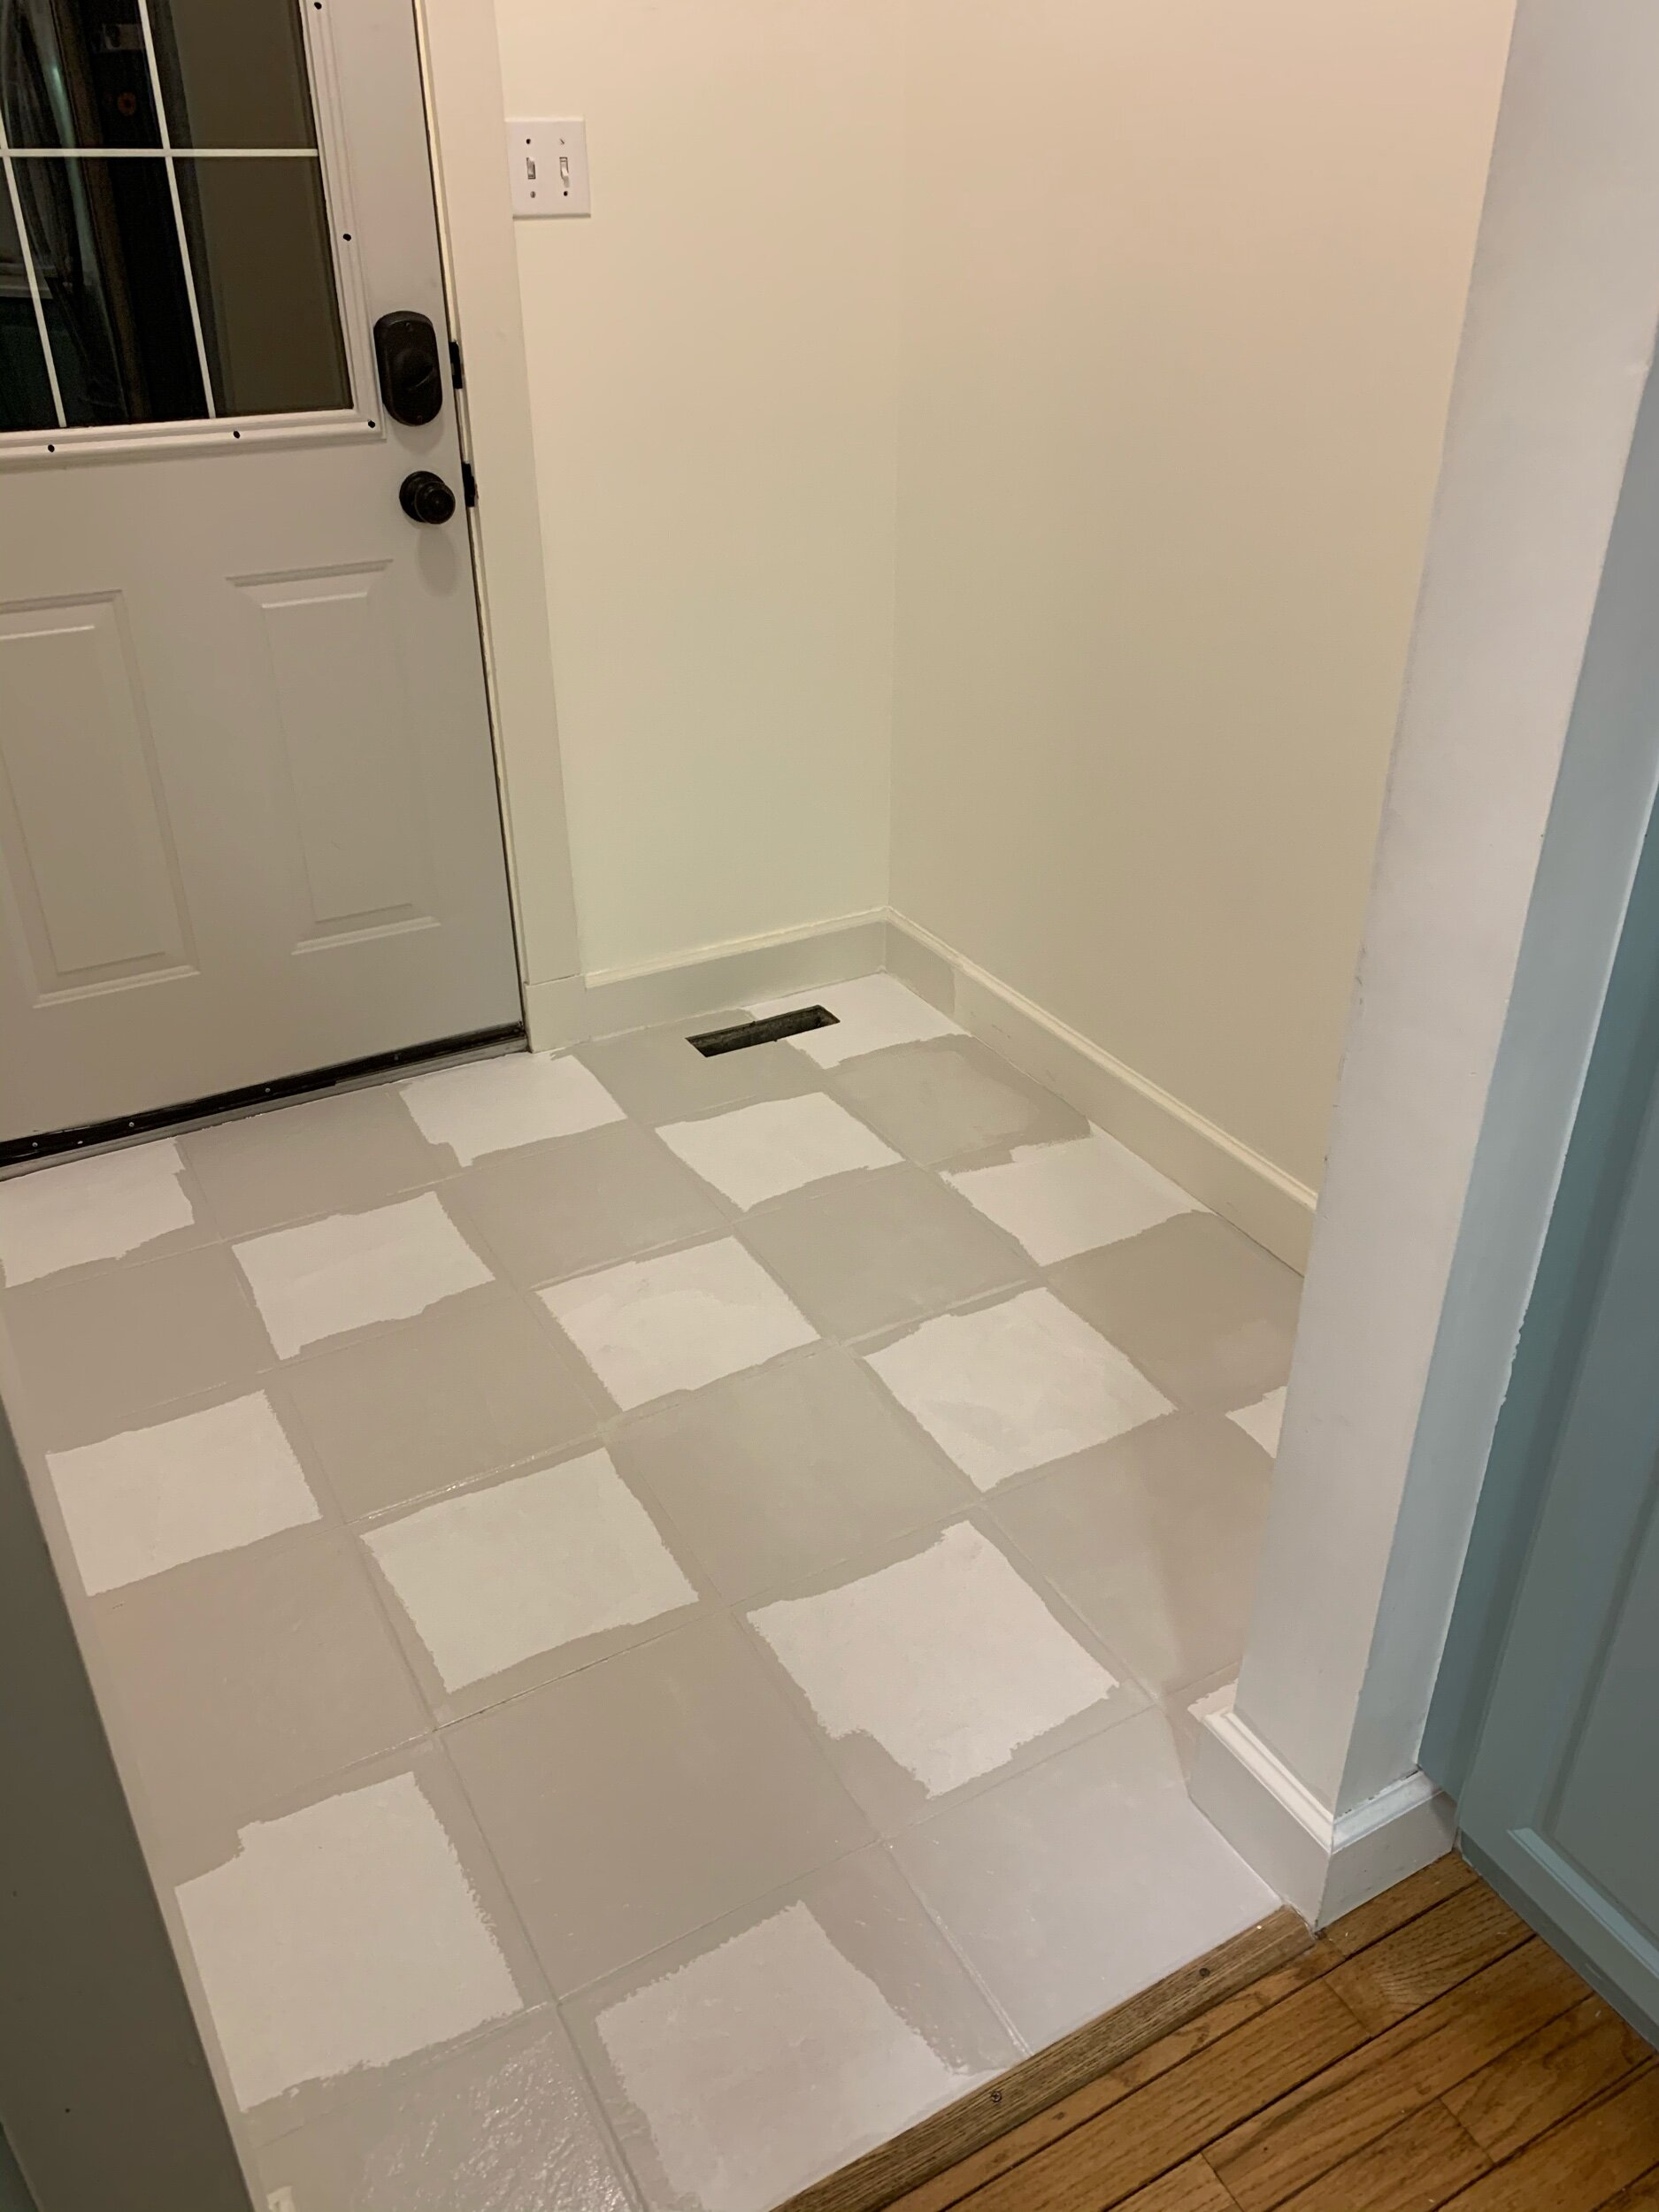 this is a photo of the beginning stages of painting tile floors in a checkerboard patter using repose grey by sherwin williams paint